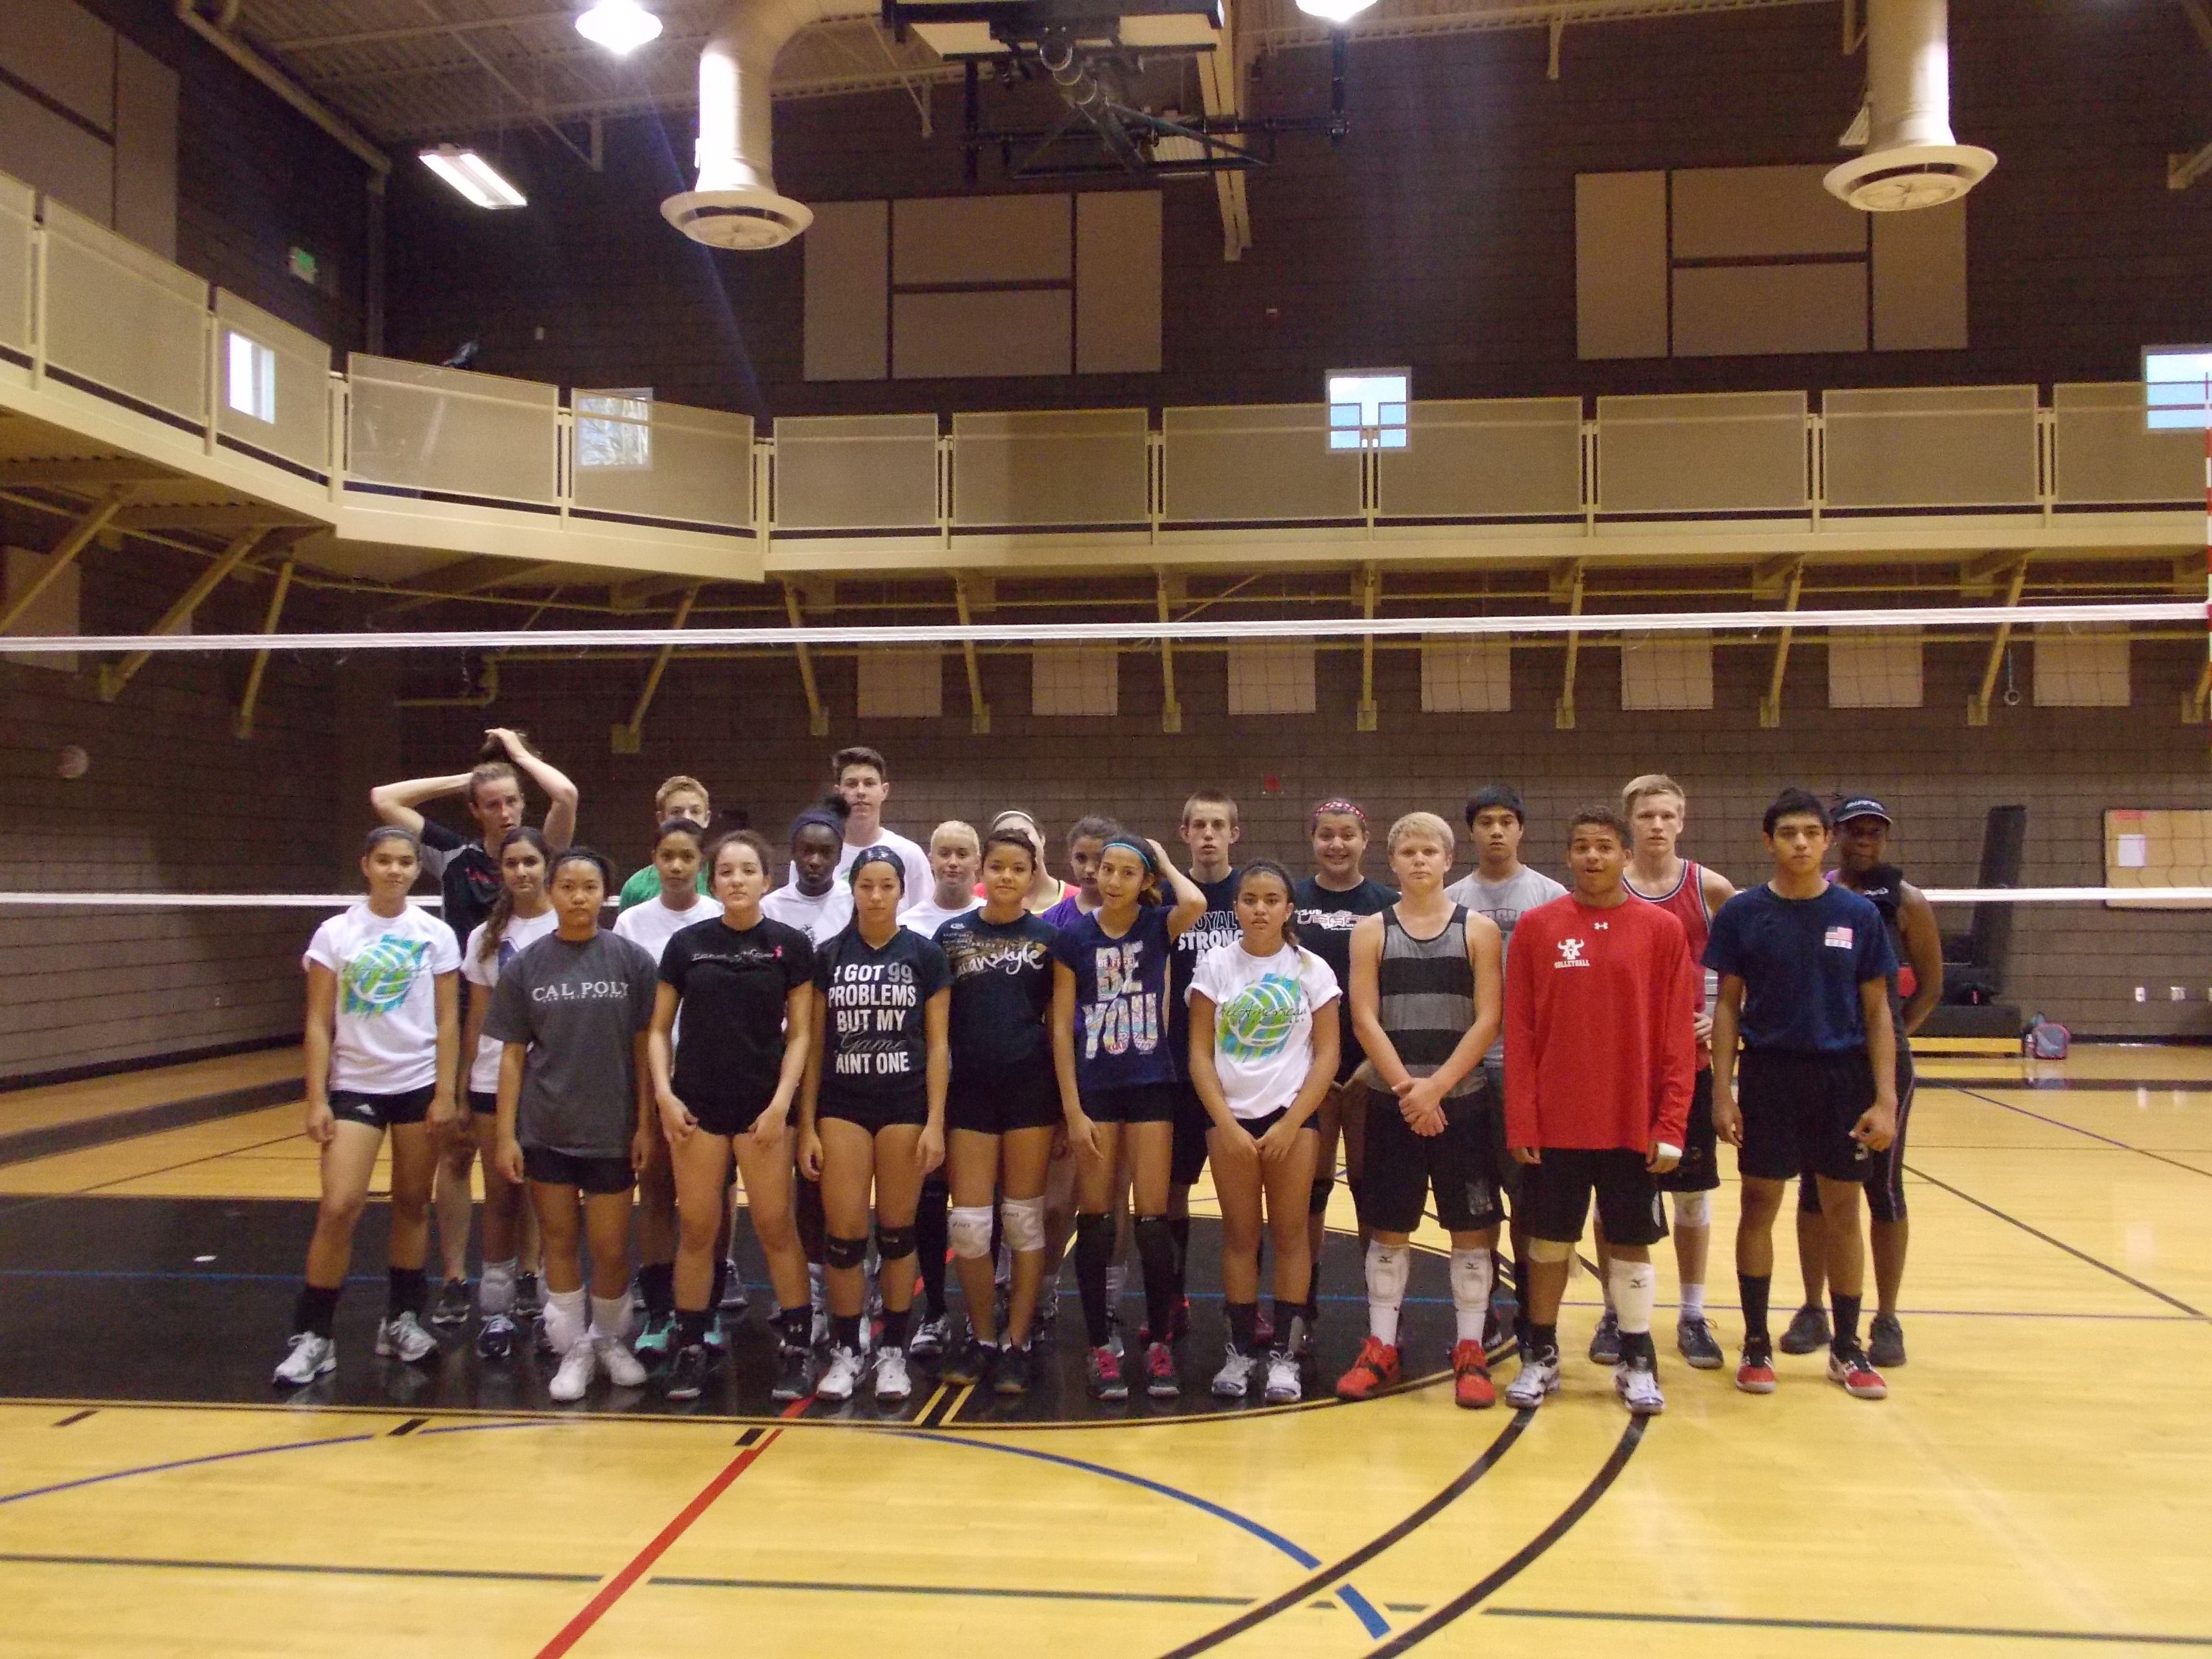 The Award Winning Las Vegas Boot Camp Volleyball Class Winter Schedule Coaching Volleyball Volleyball Training